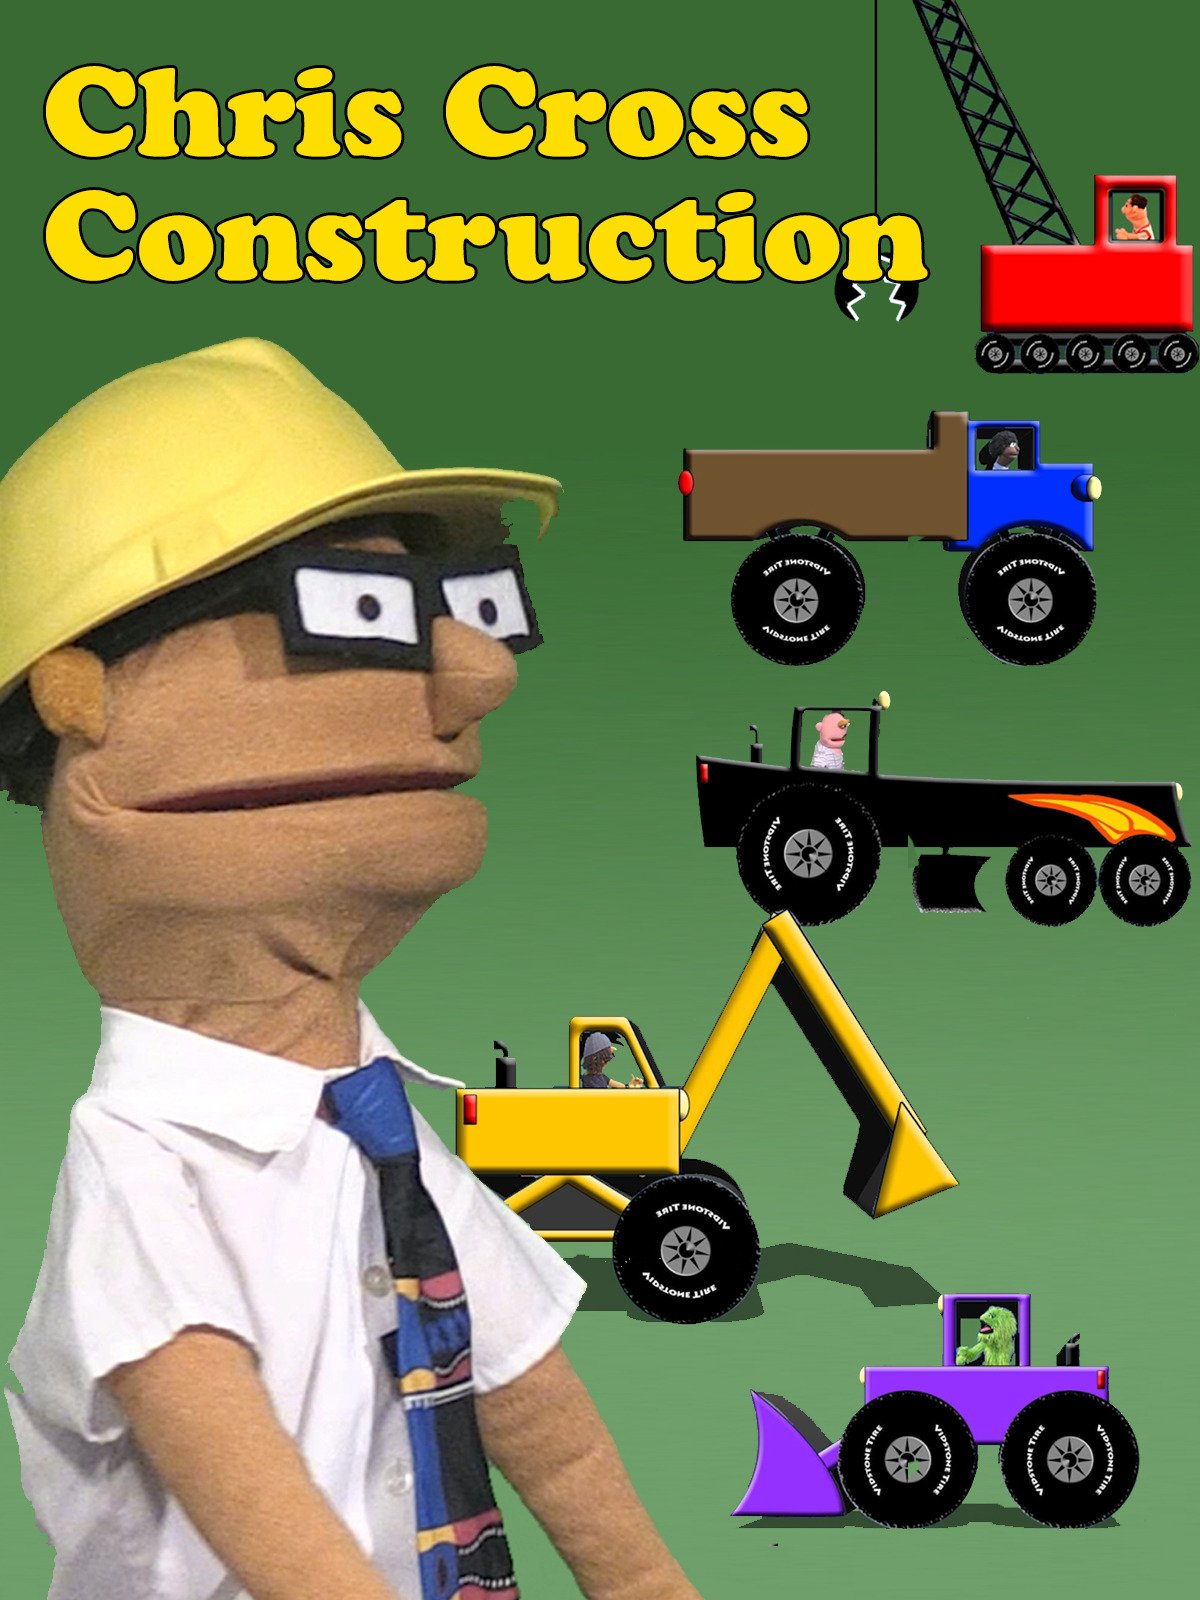 Chris Cross Construction